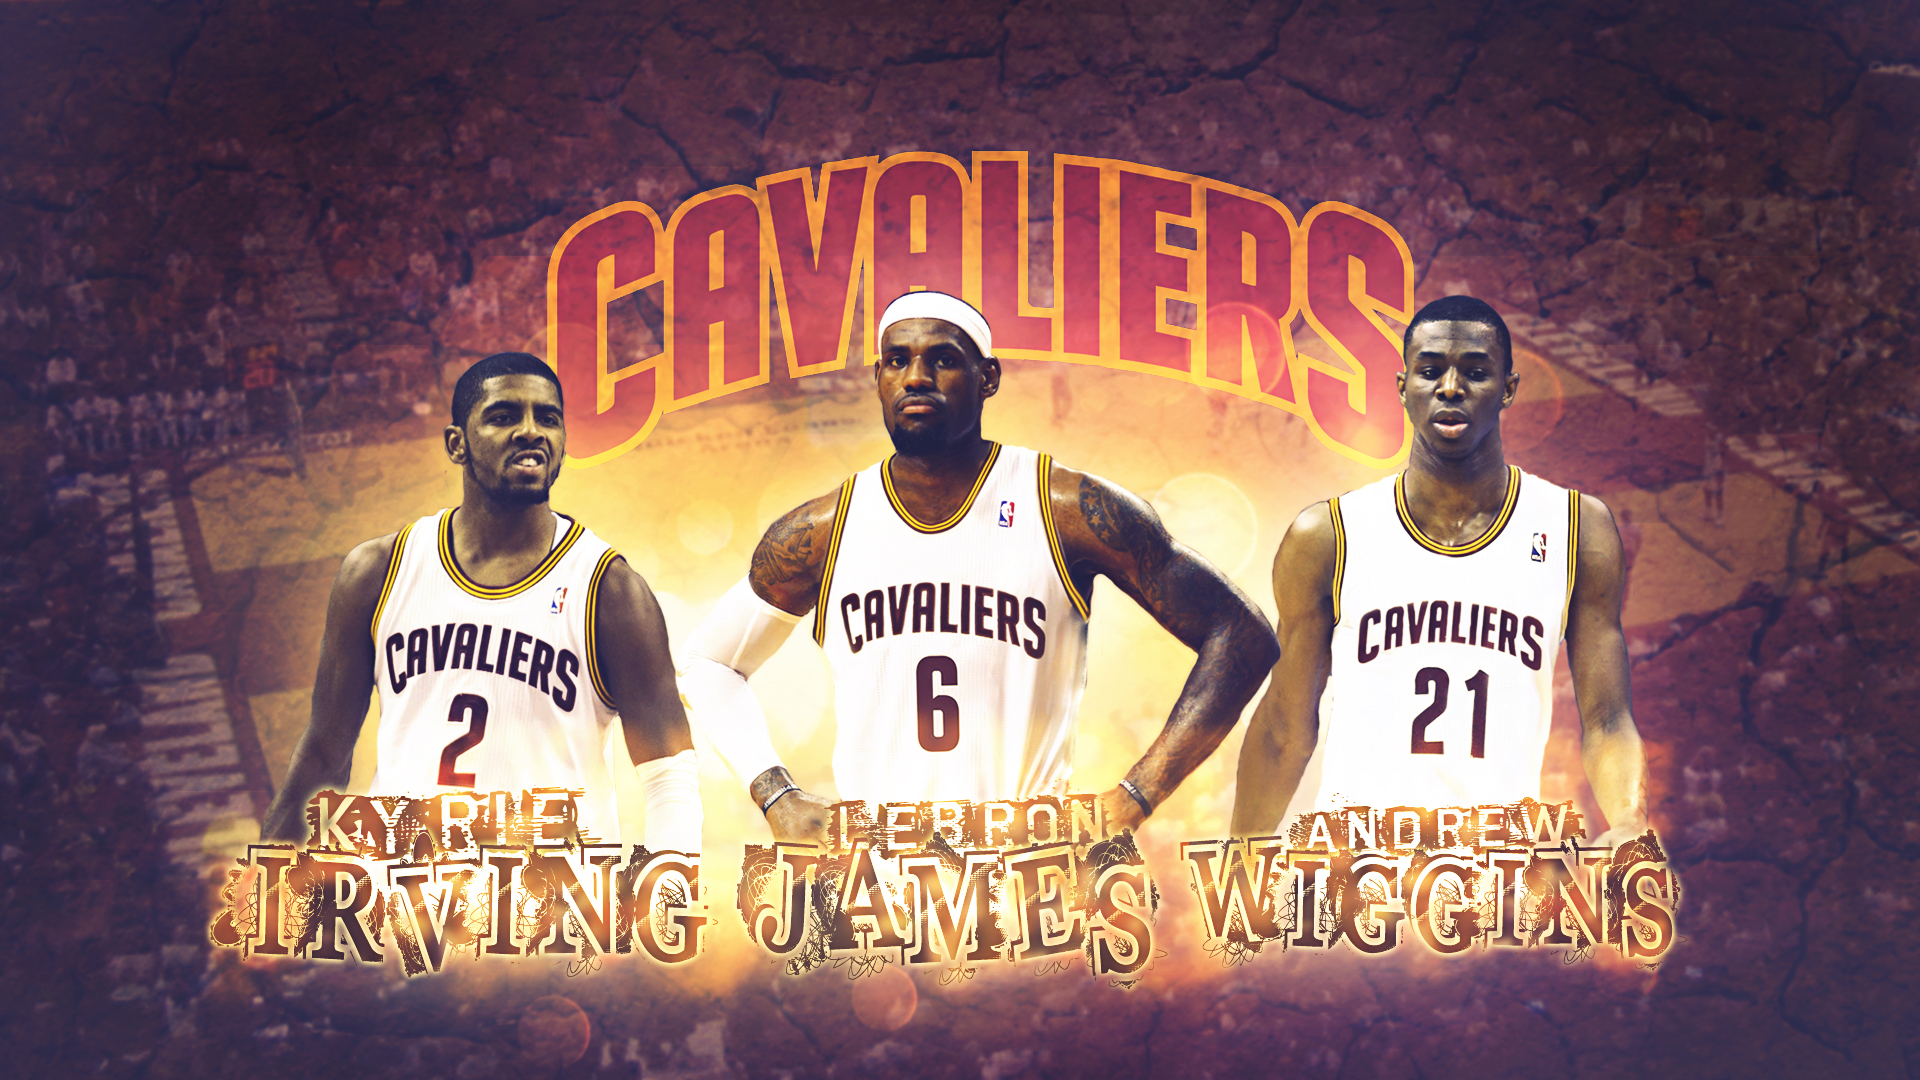 Lebron James, Kyrie Irving, Andrew Wiggins by ricis96 on DeviantArt